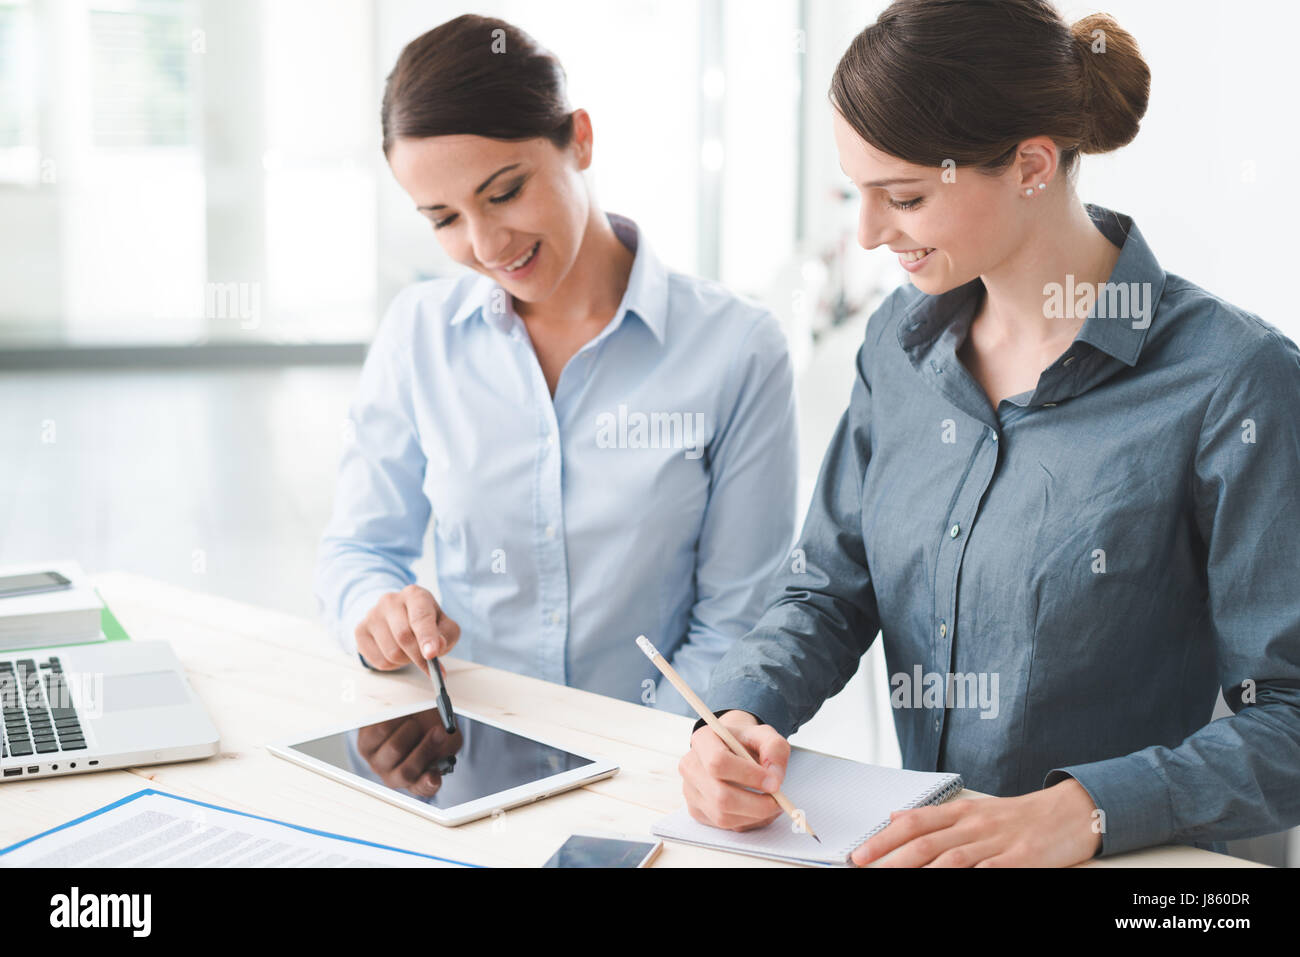 hight resolution of professional business women working together at office